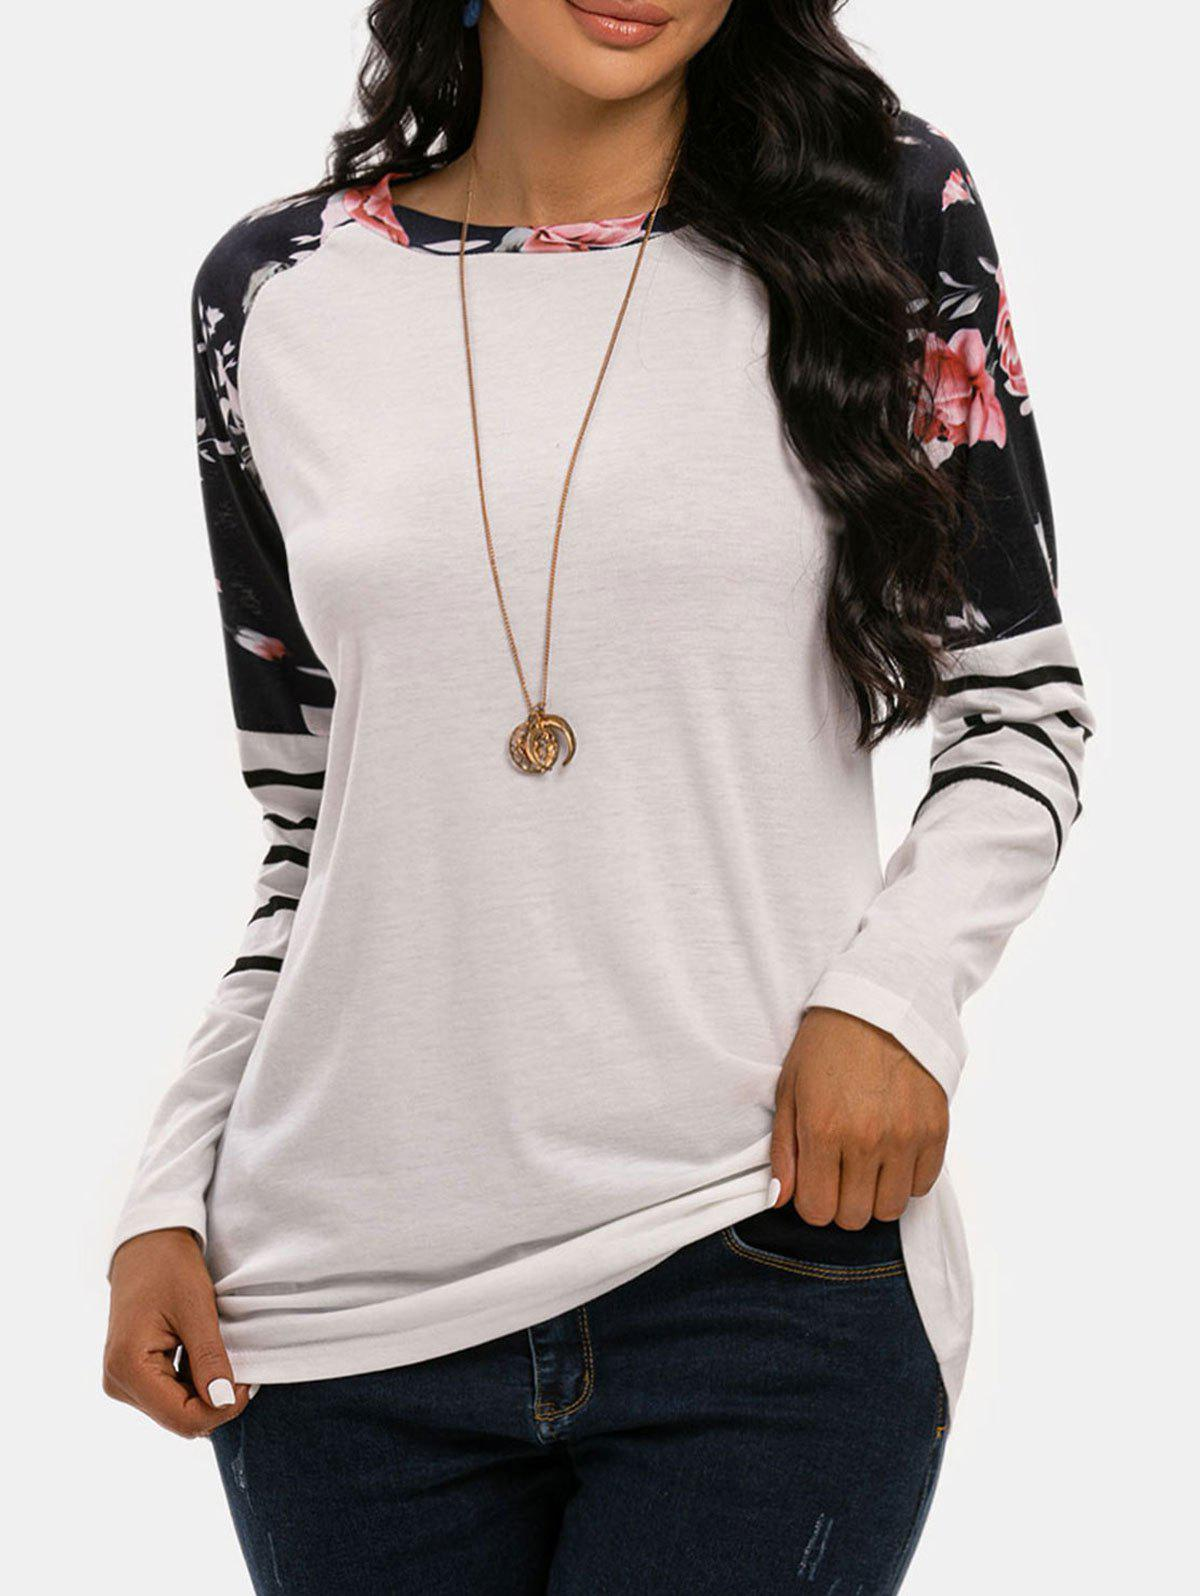 Striped Flower Raglan Sleeve Tunic T-shirt - WHITE S